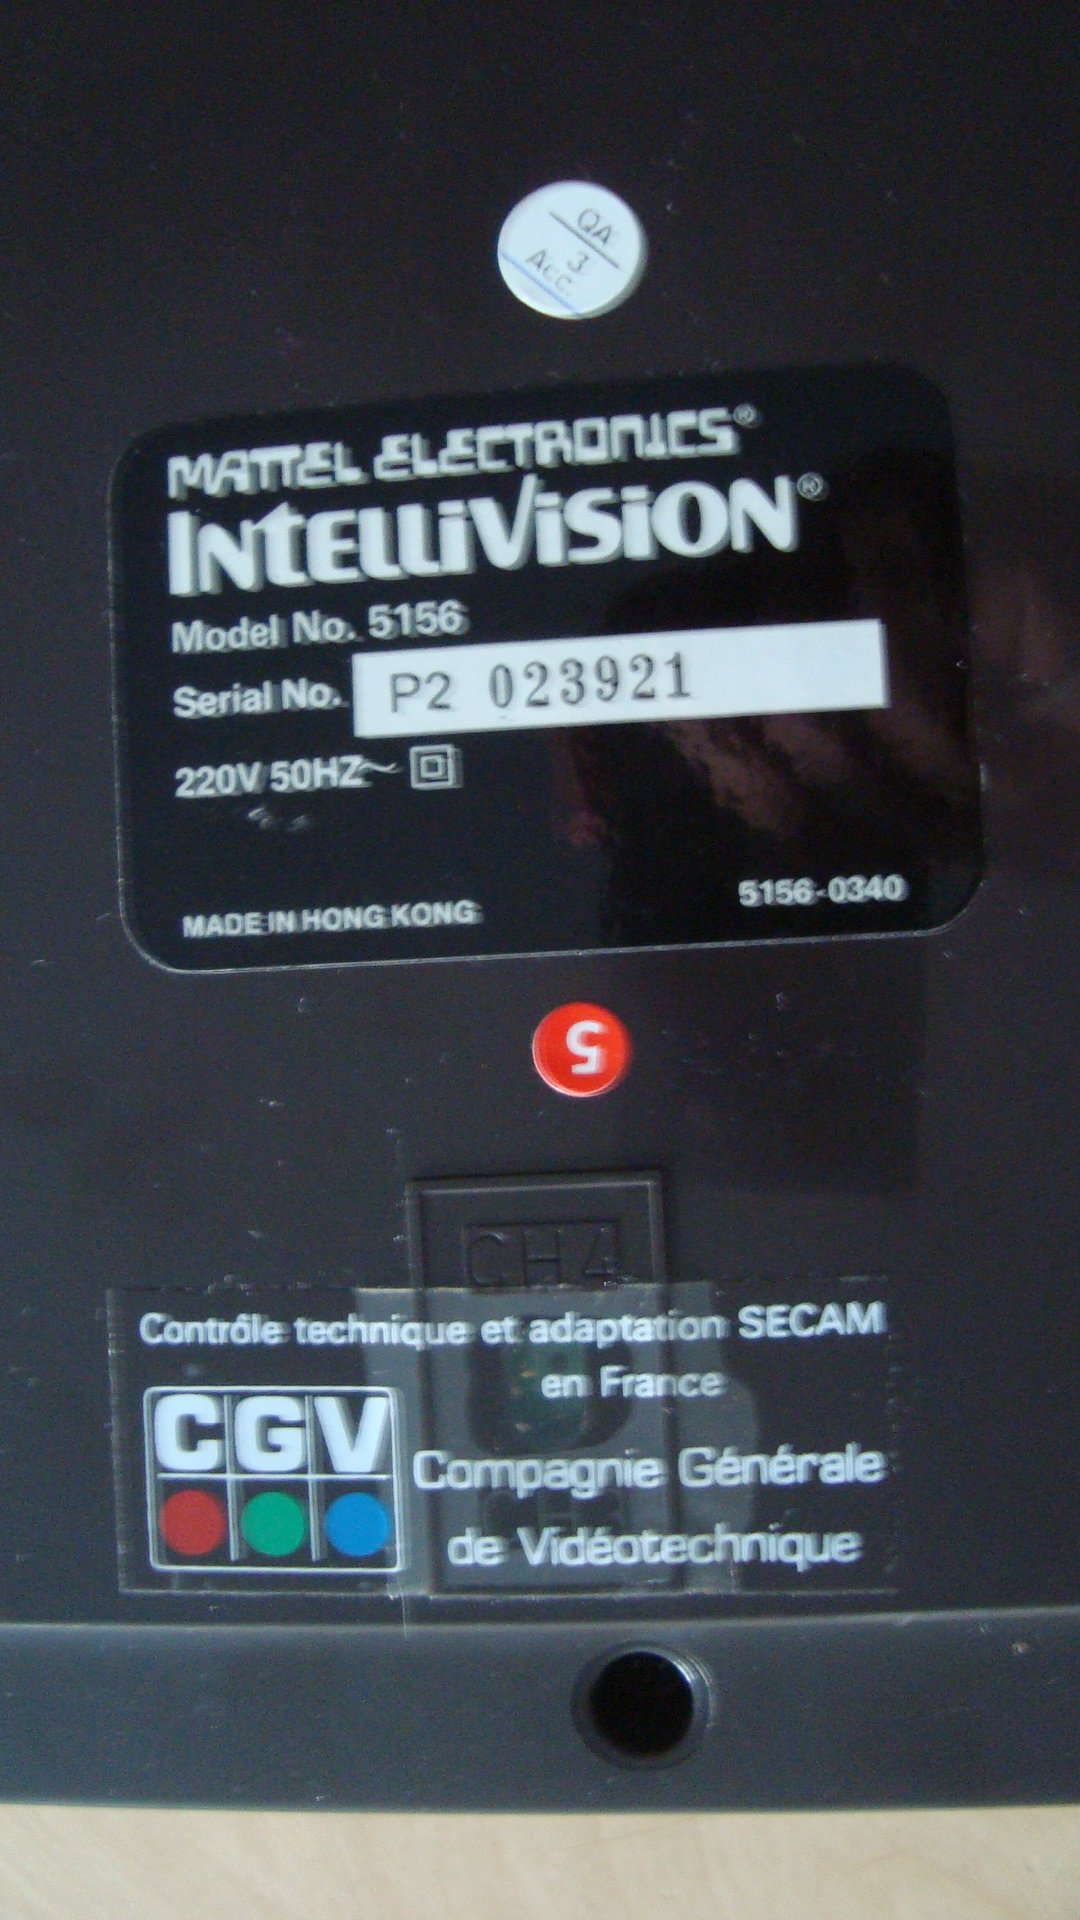 INTELLIVISION LE TOPIC (ENFIN) OFFICIEL - Page 18 200511090114984767